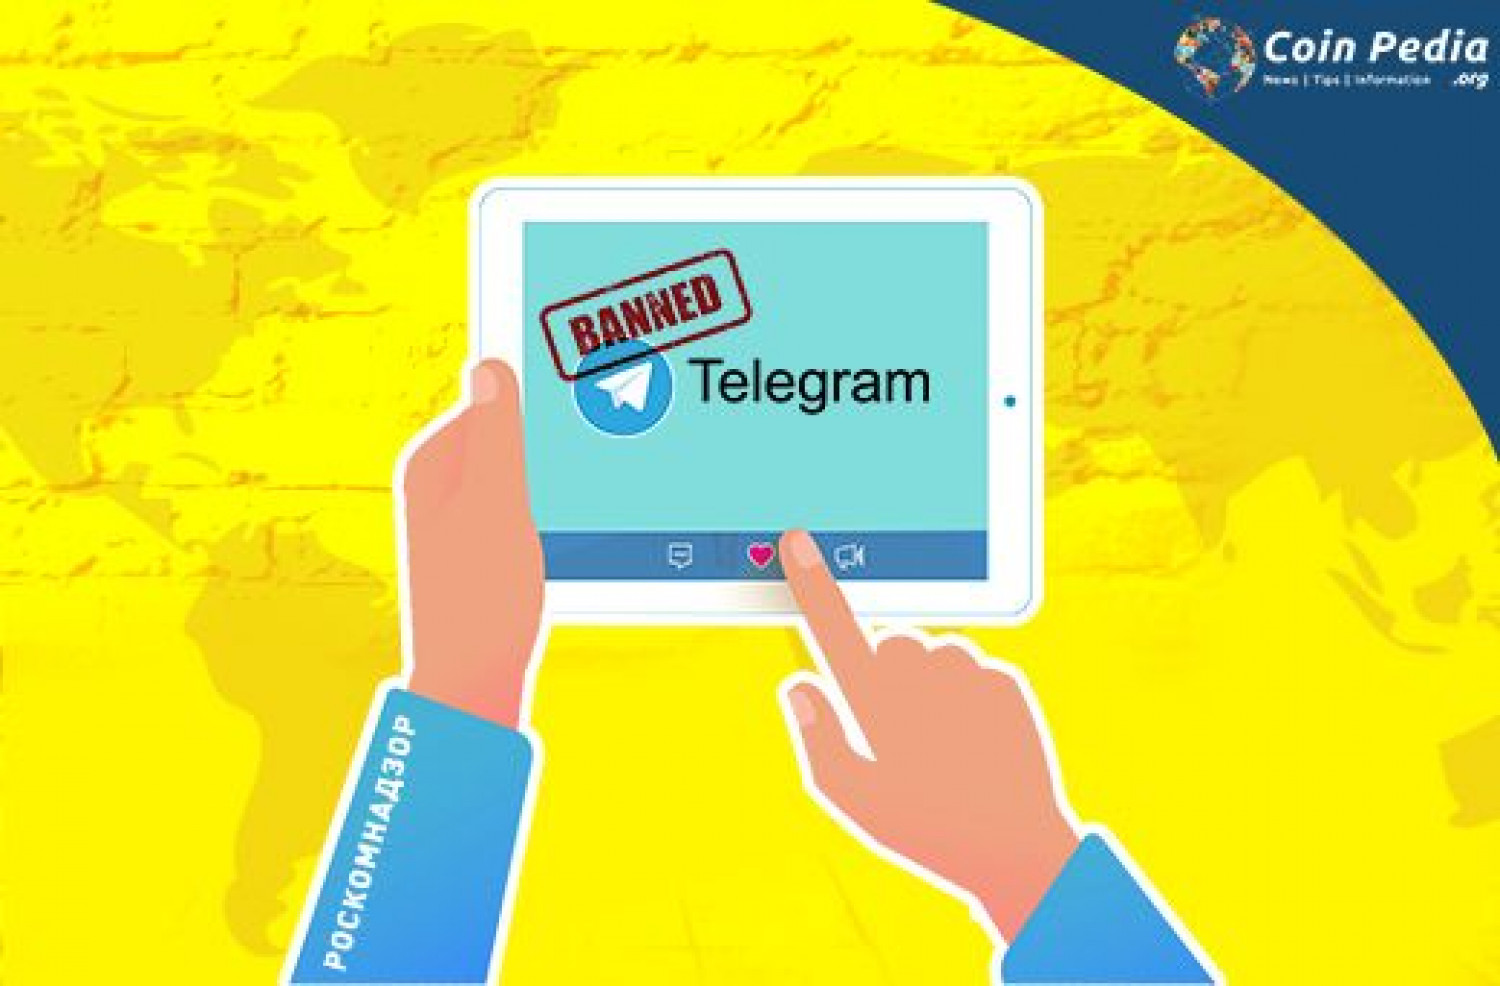 Russian Court Bans Telegram, Founder's Insolent Infographic